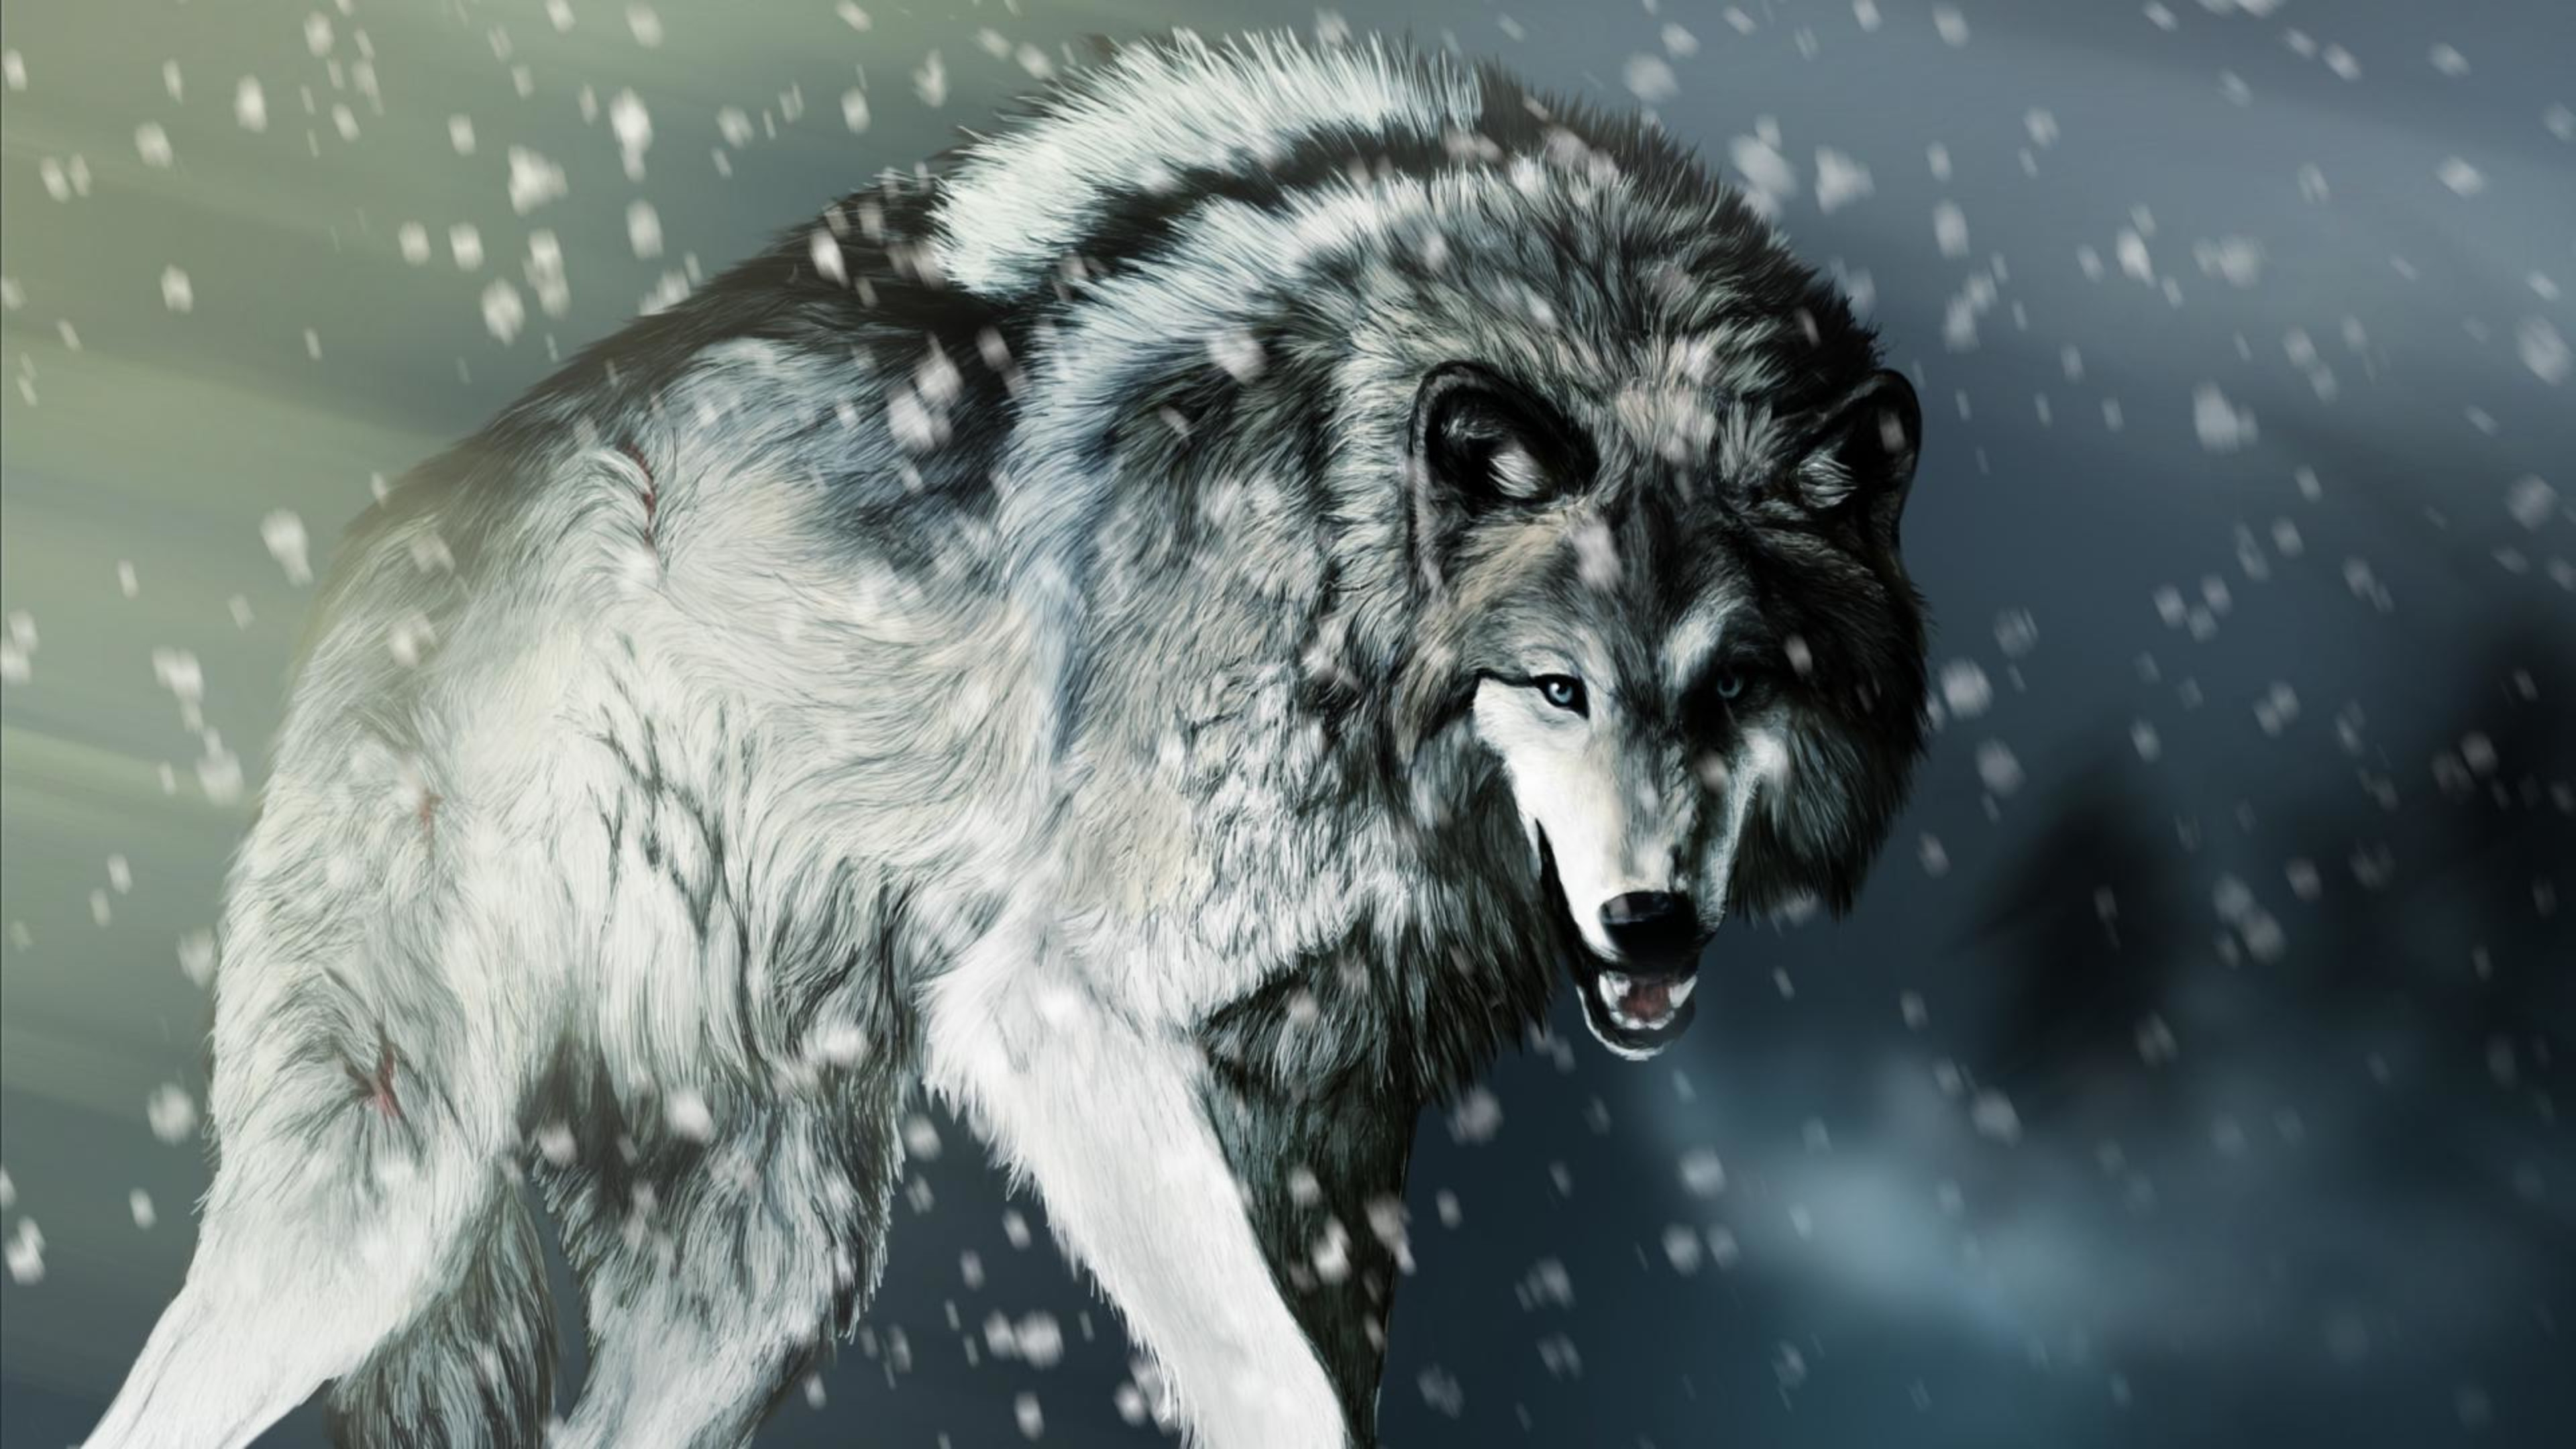 58 4K Wolf Wallpapers on WallpaperPlay 3840x2160